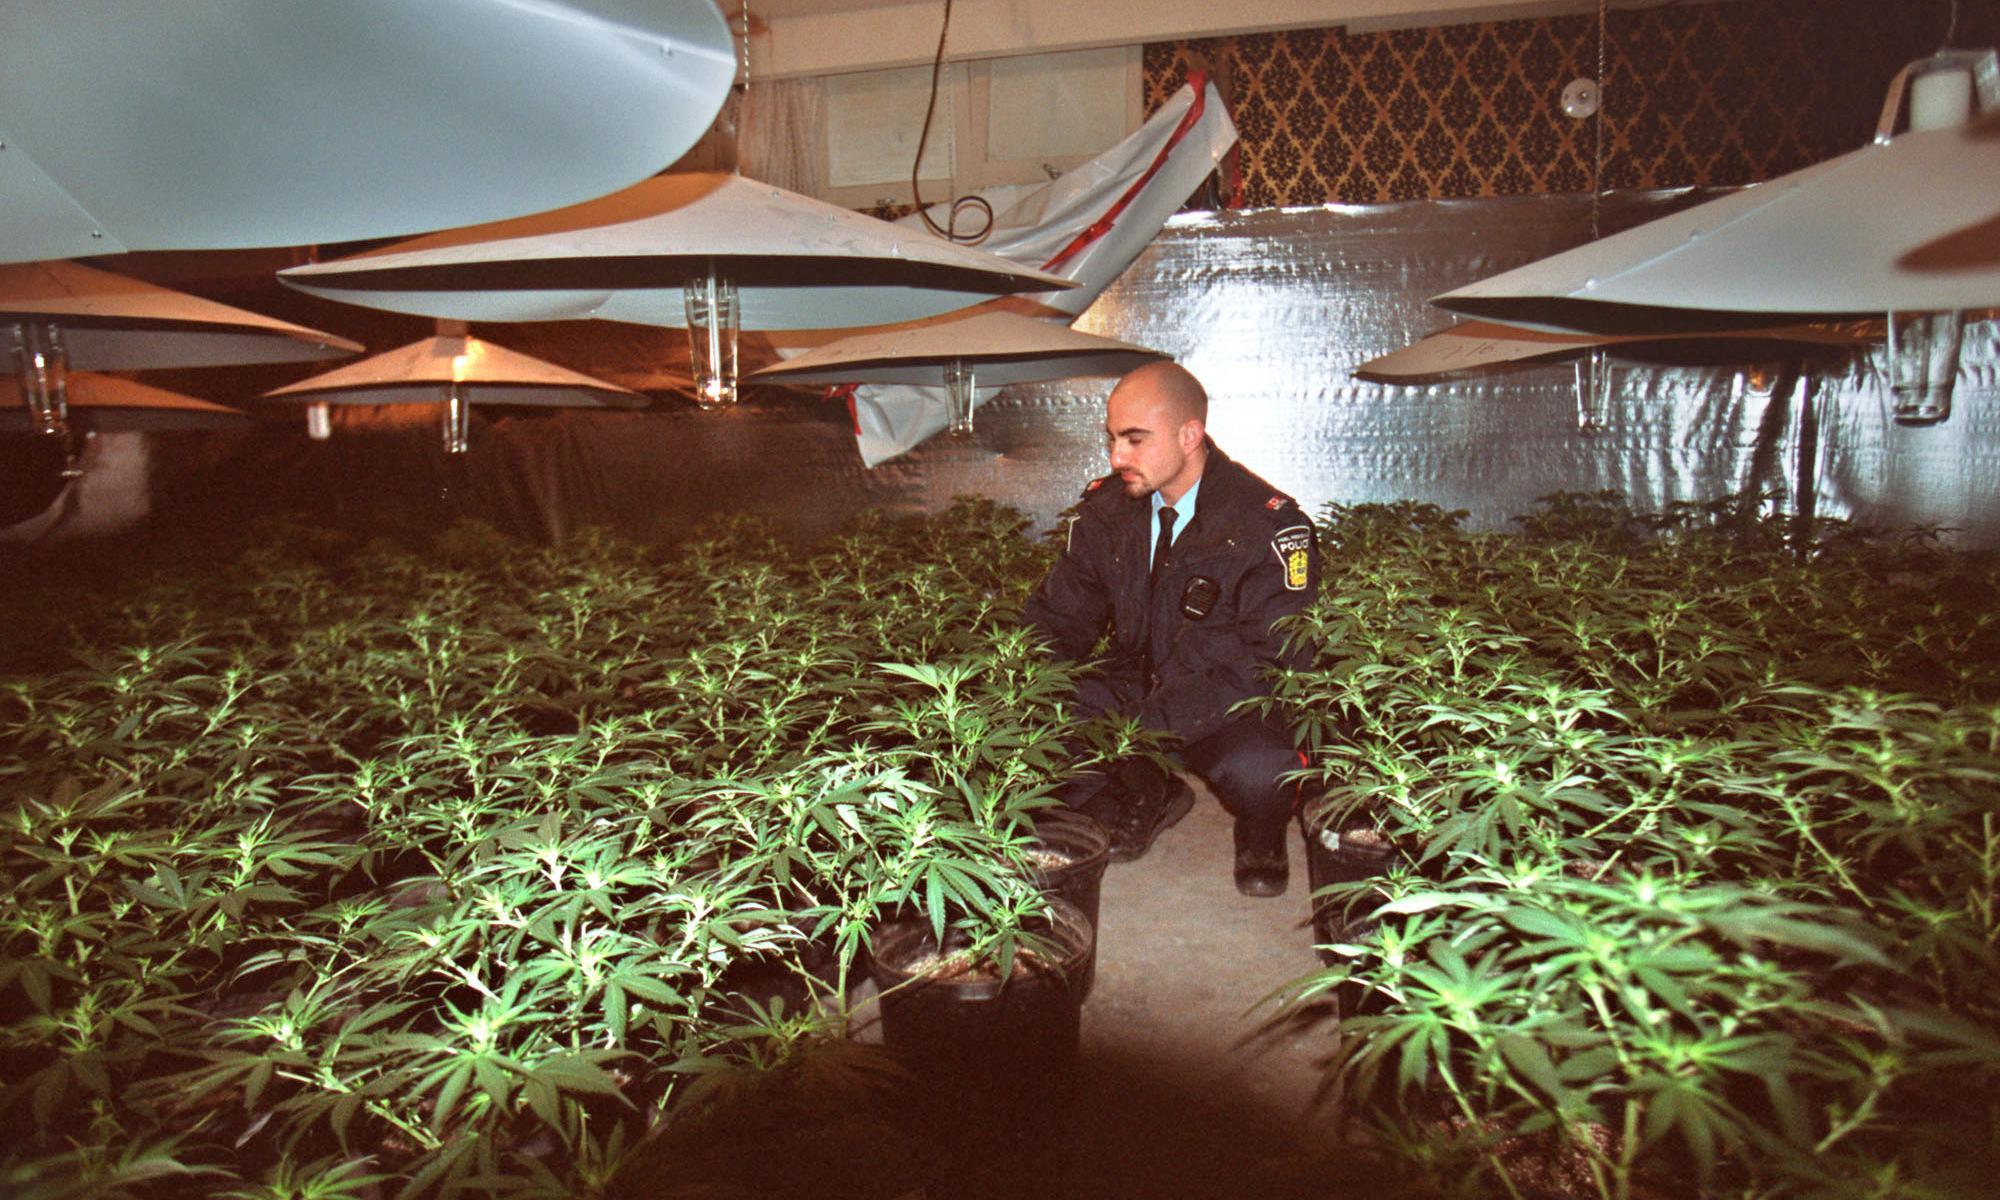 I served 20 years for cannabis. Now the police are cashing in on it